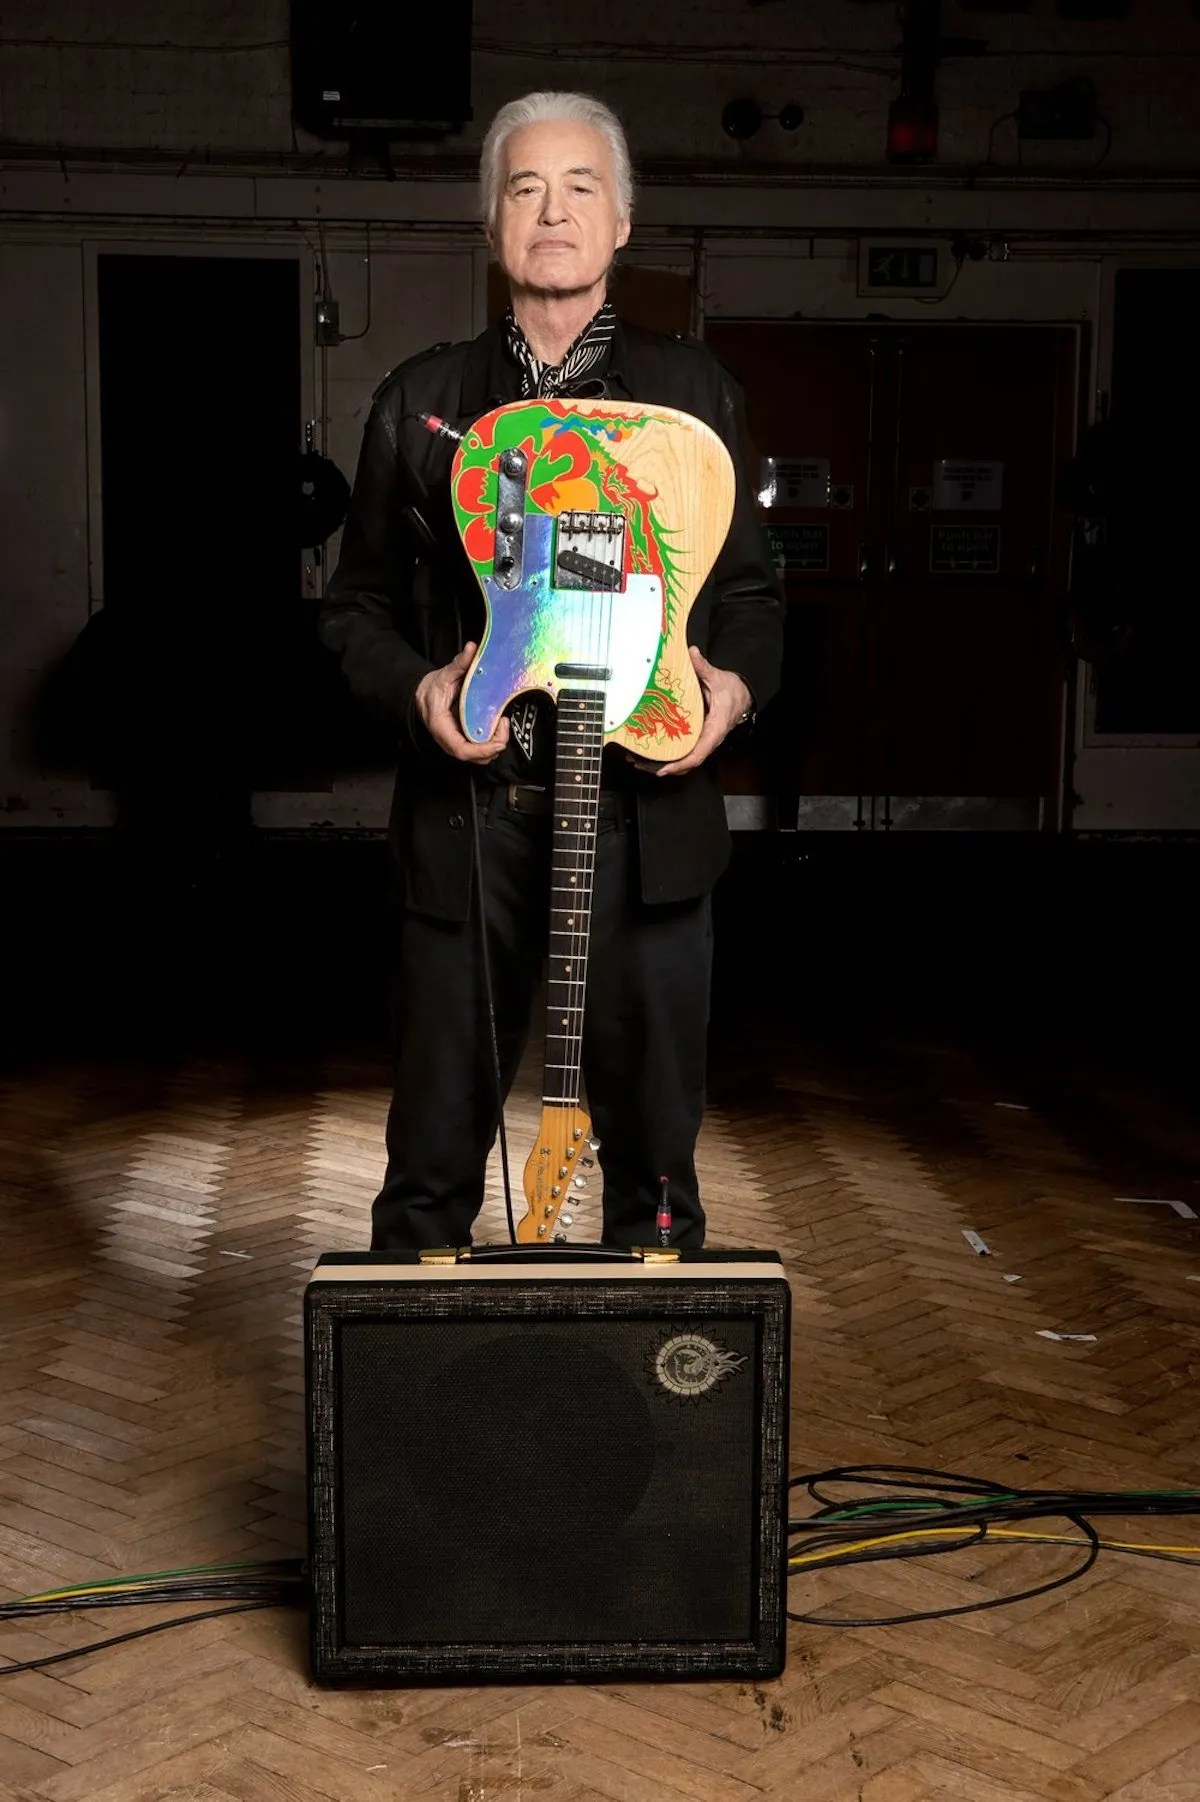 Jimmy-Page-standing.jpg?w=1200